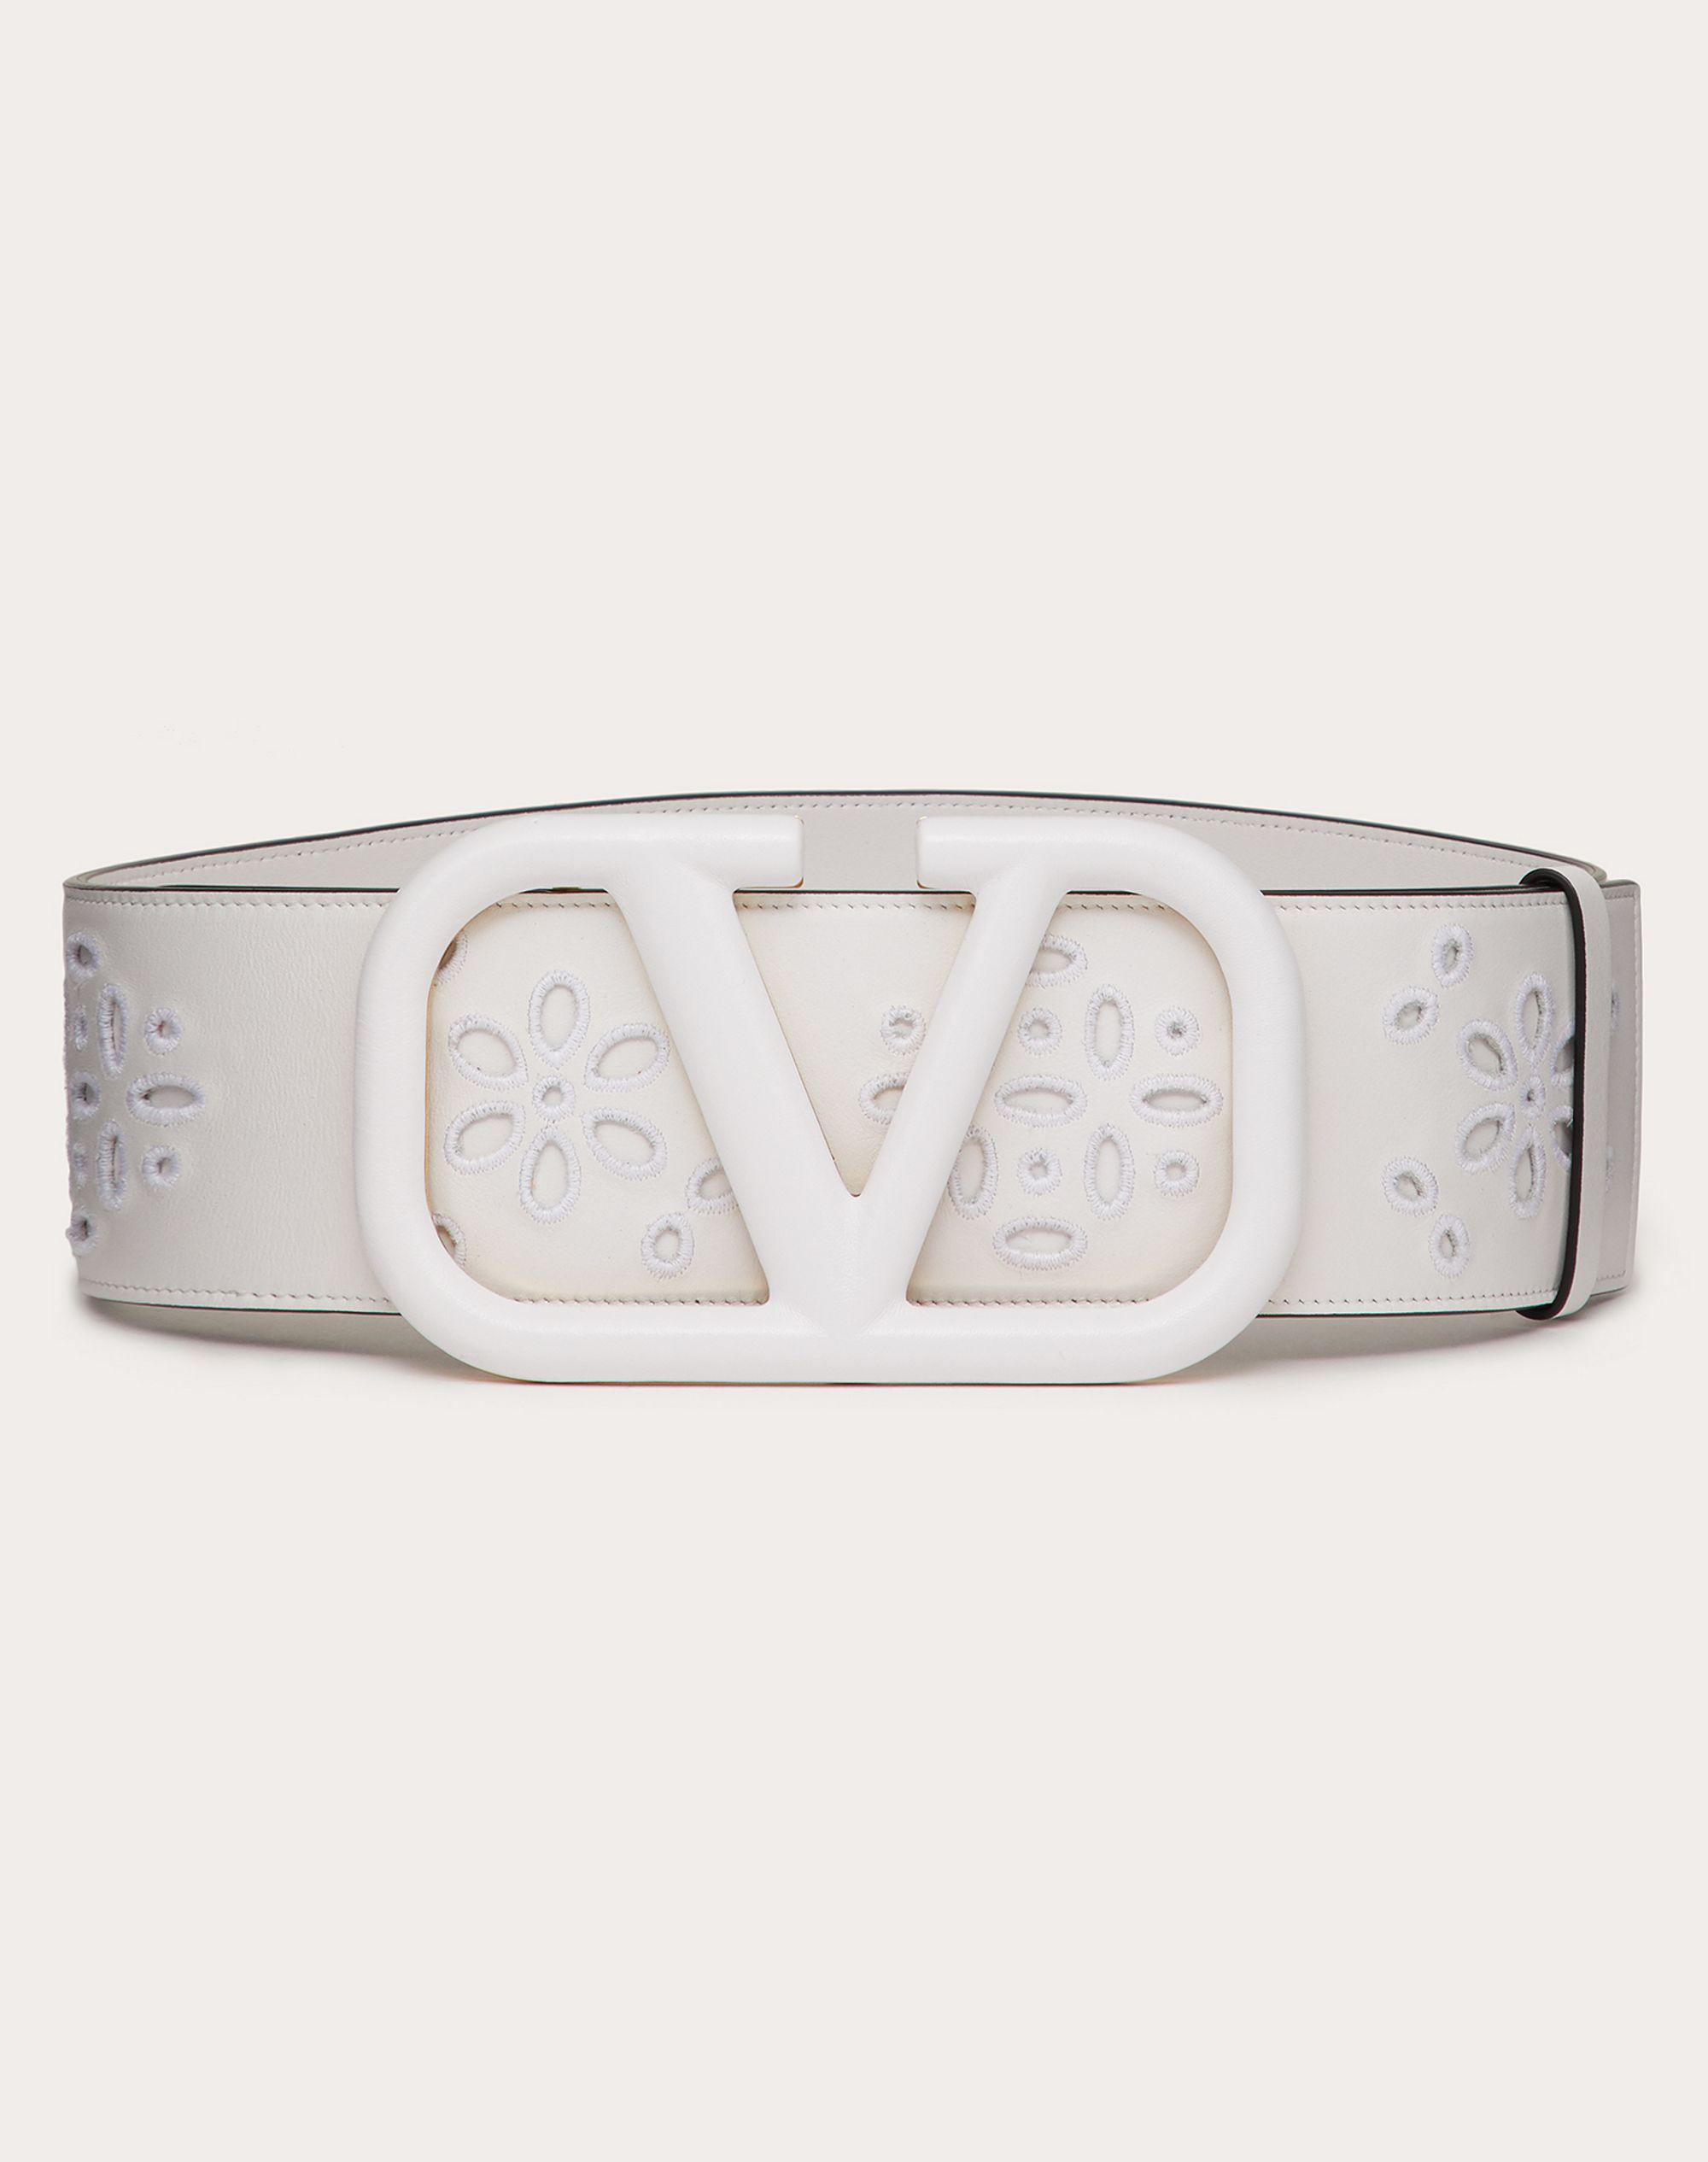 VLOGO SIGNATURE BELT IN CALFSKIN WITH SAN GALLO EMBROIDERY 70 MM